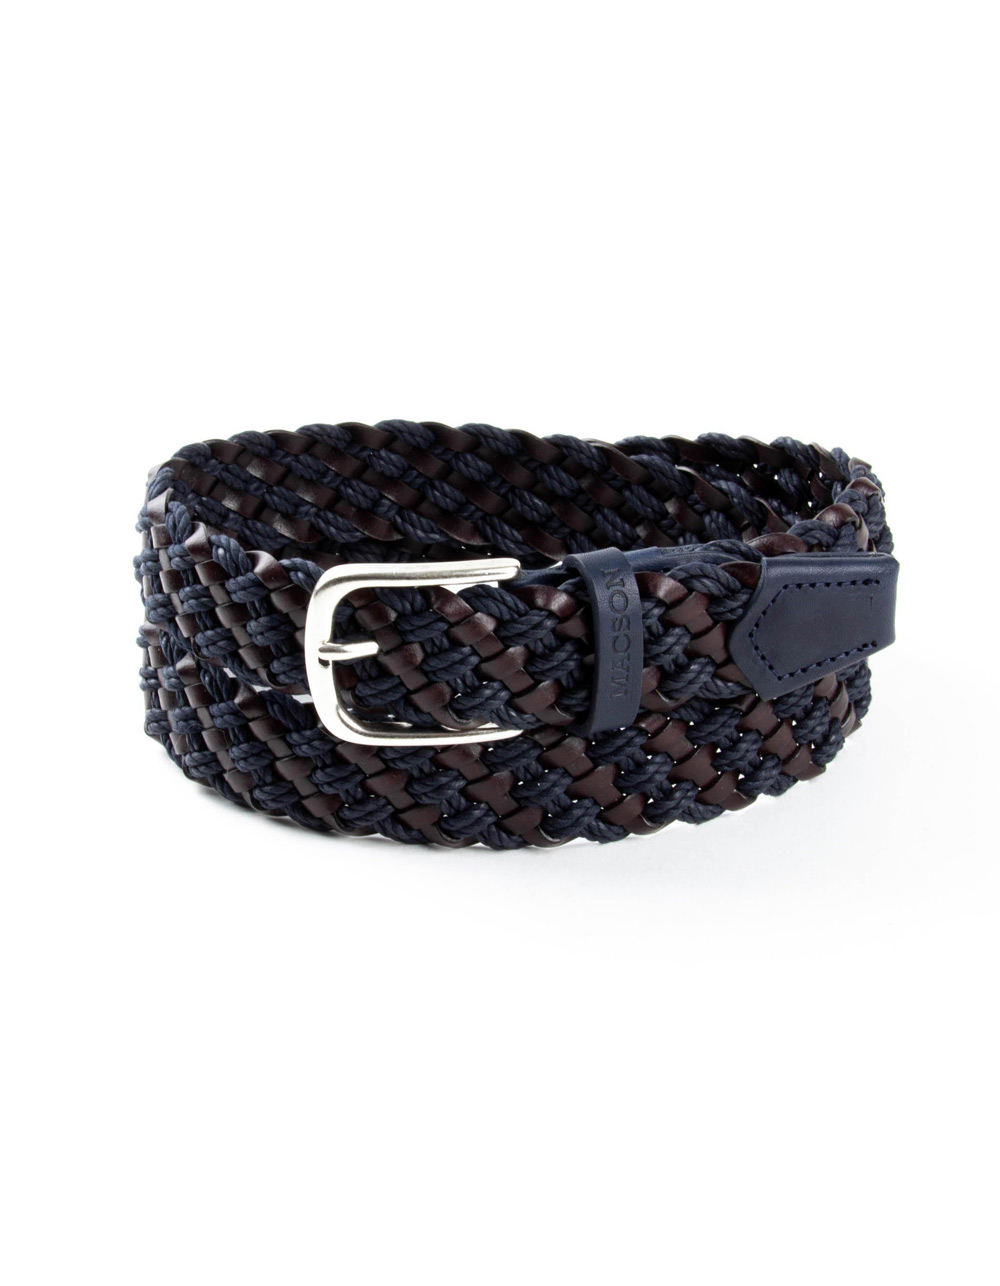 Navy blue and brown braided belt